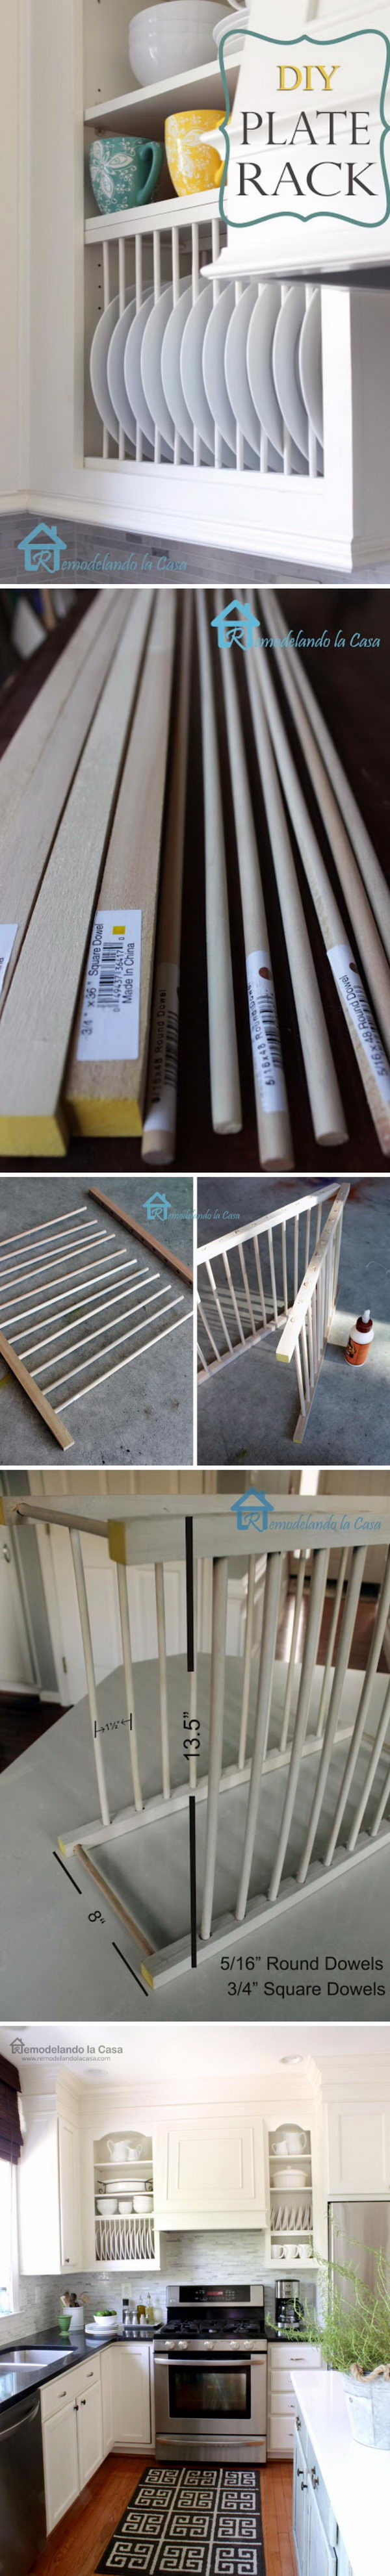 DIY Inside Cabinet Plate Rack.